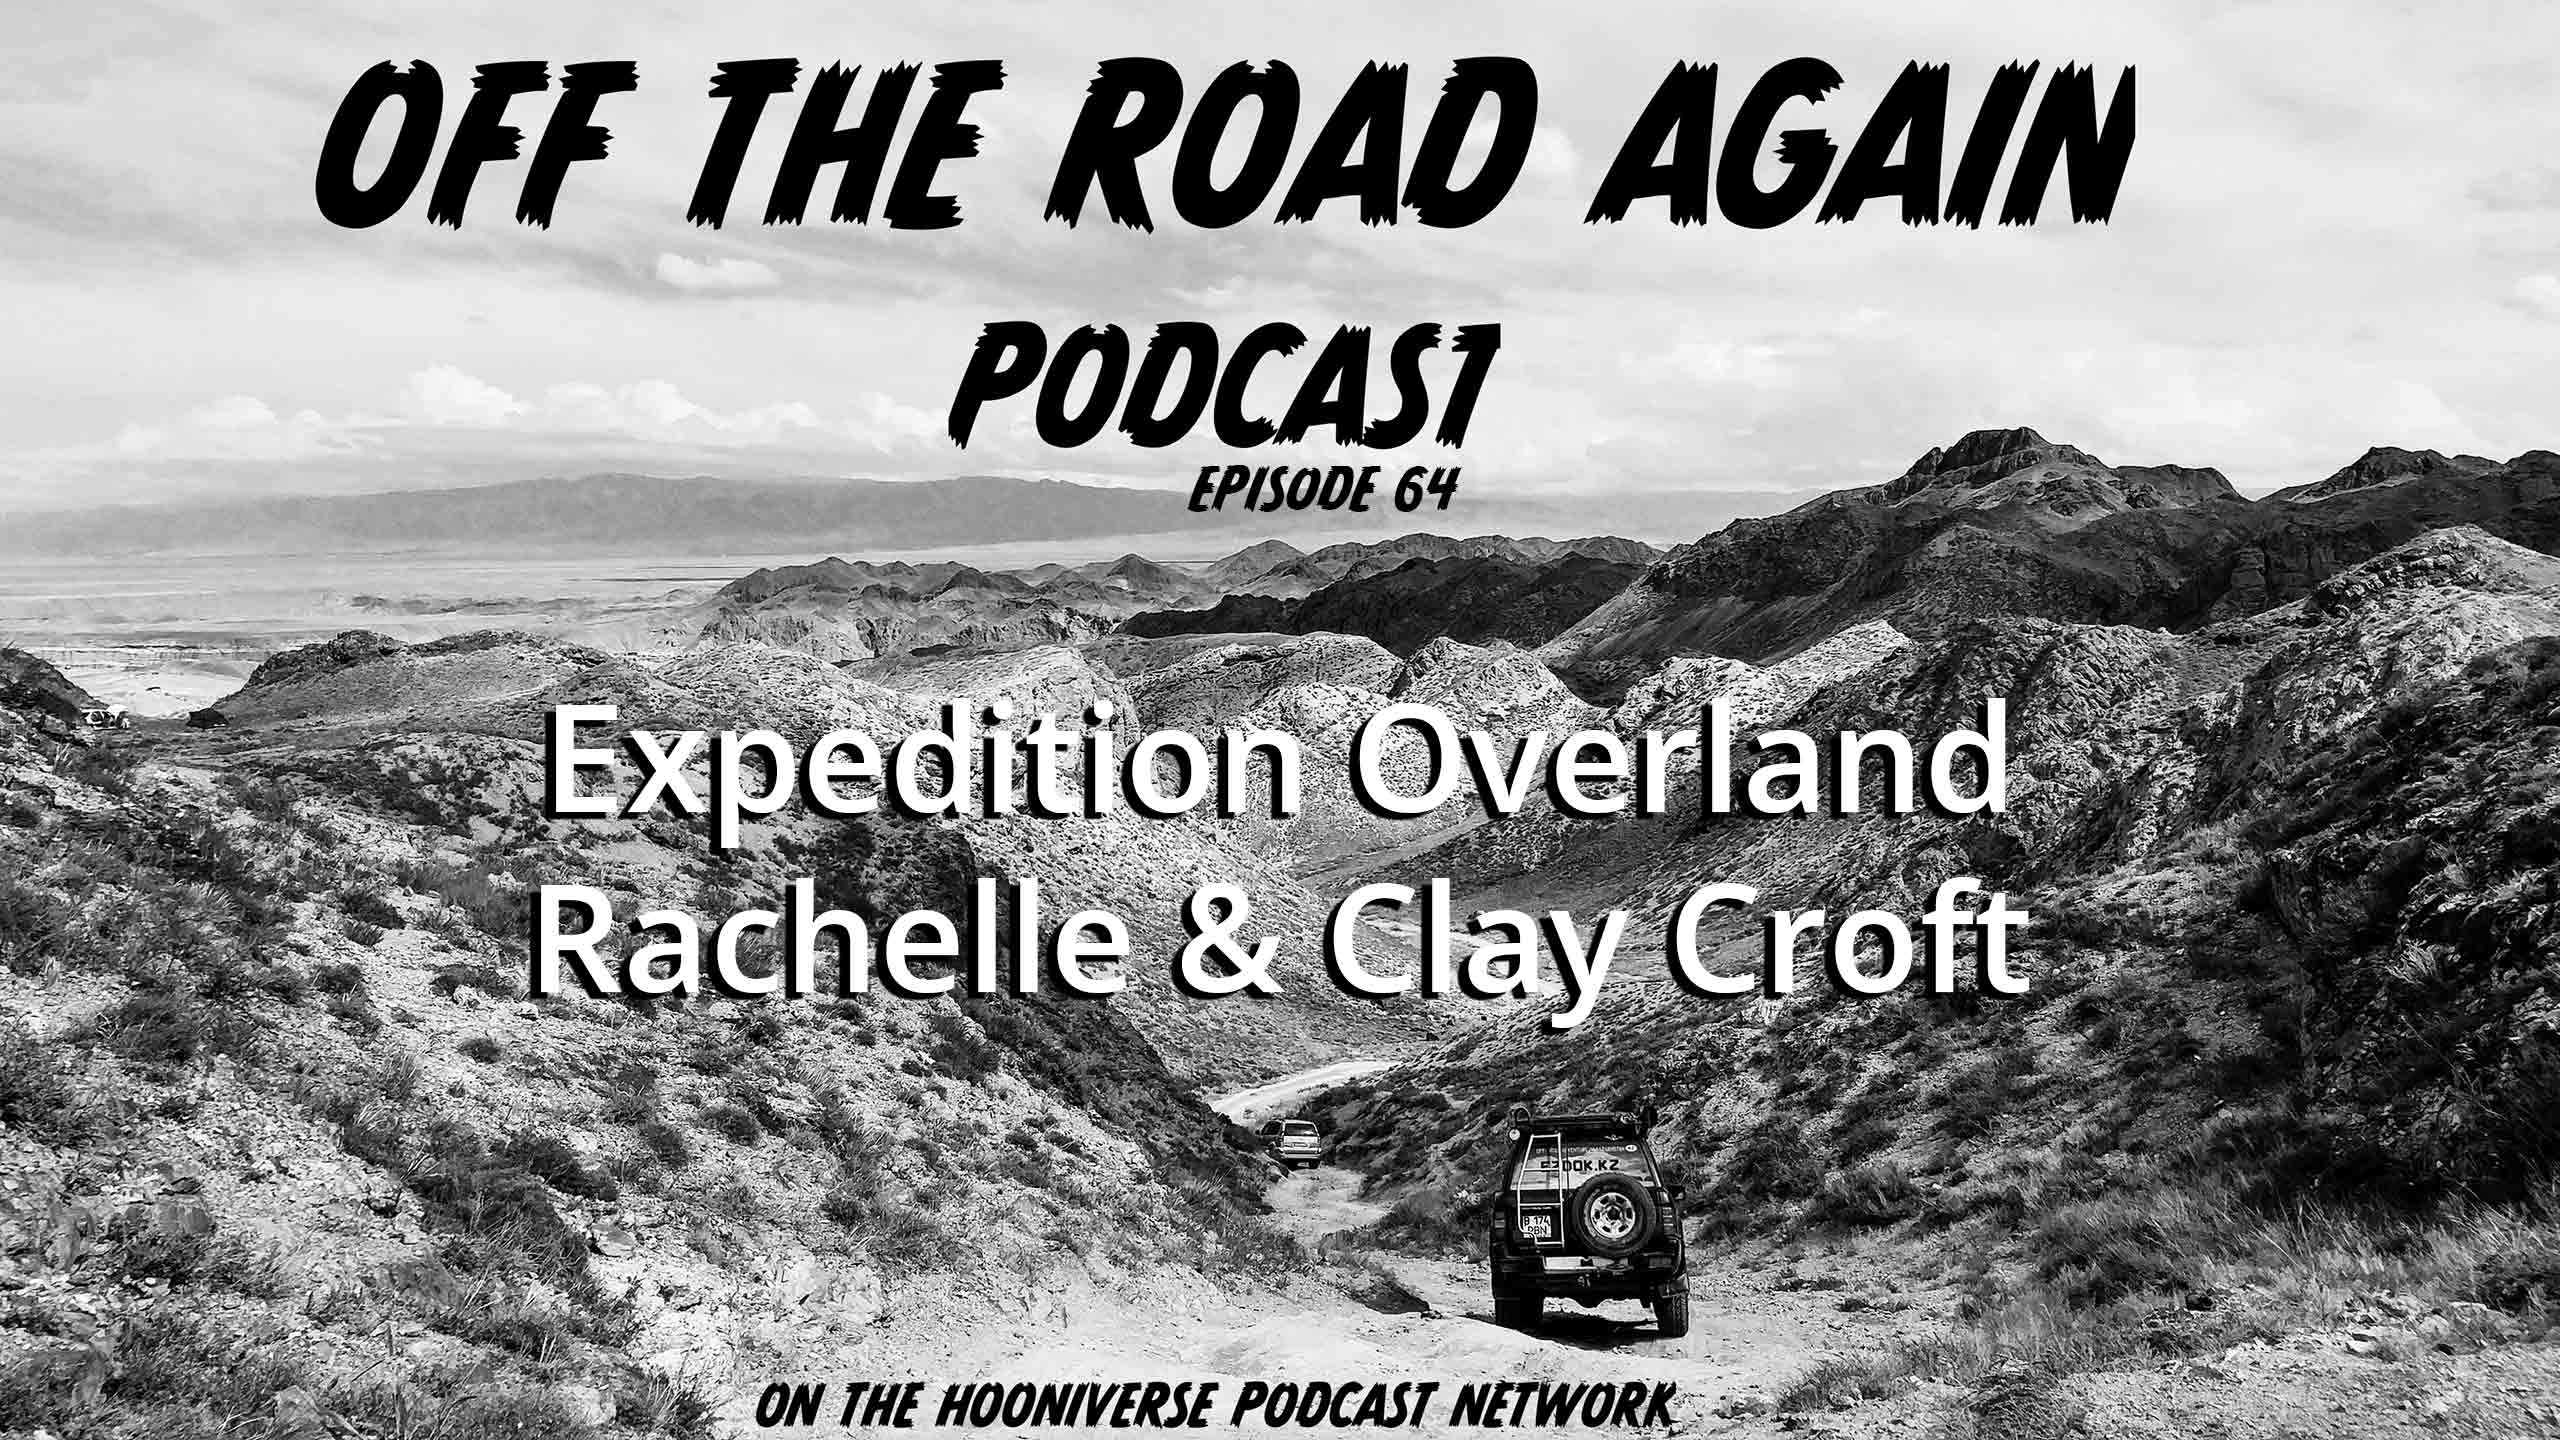 Expedition-Overland-Off-The-Road-Again-Podcast-Episode-64